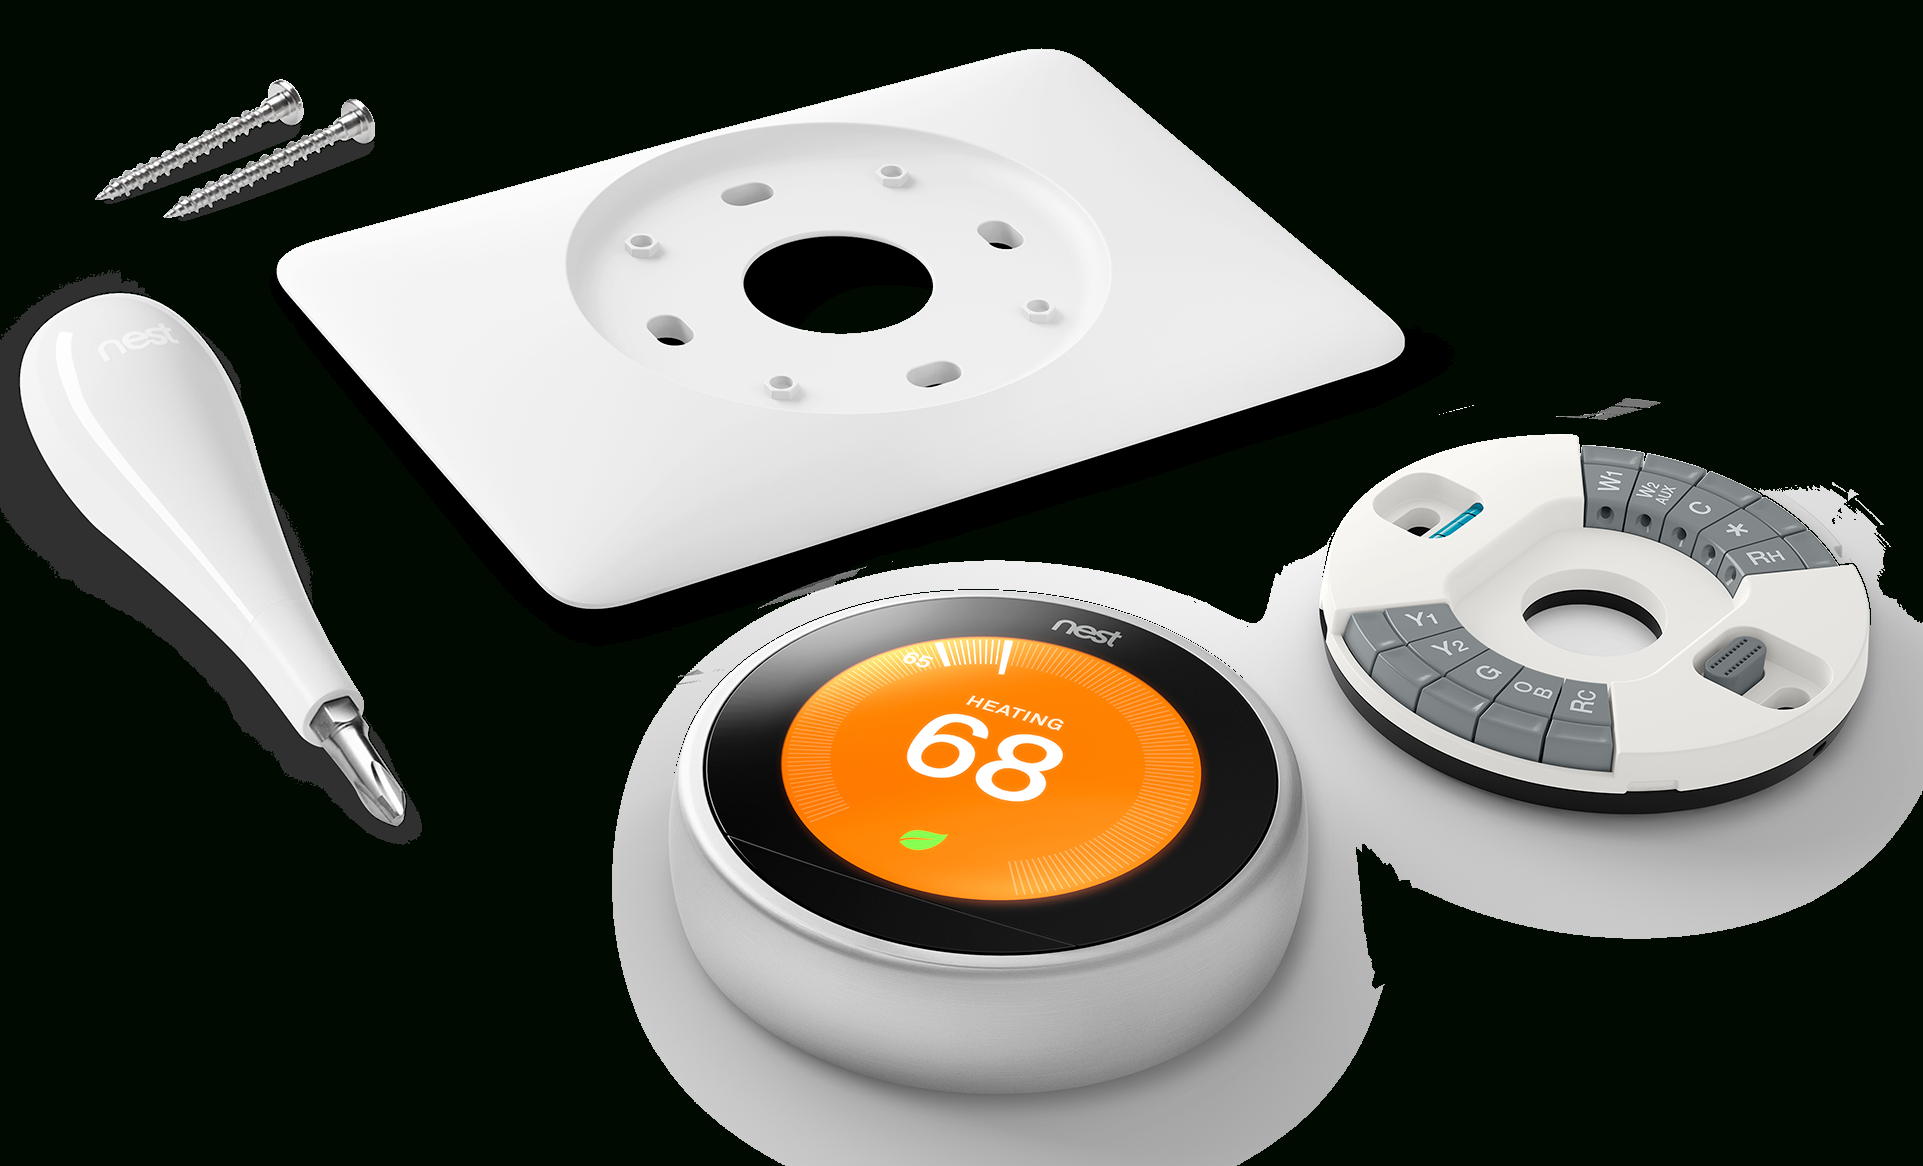 How To Install Your Nest Thermostat - Nest Heating System Wiring Diagram